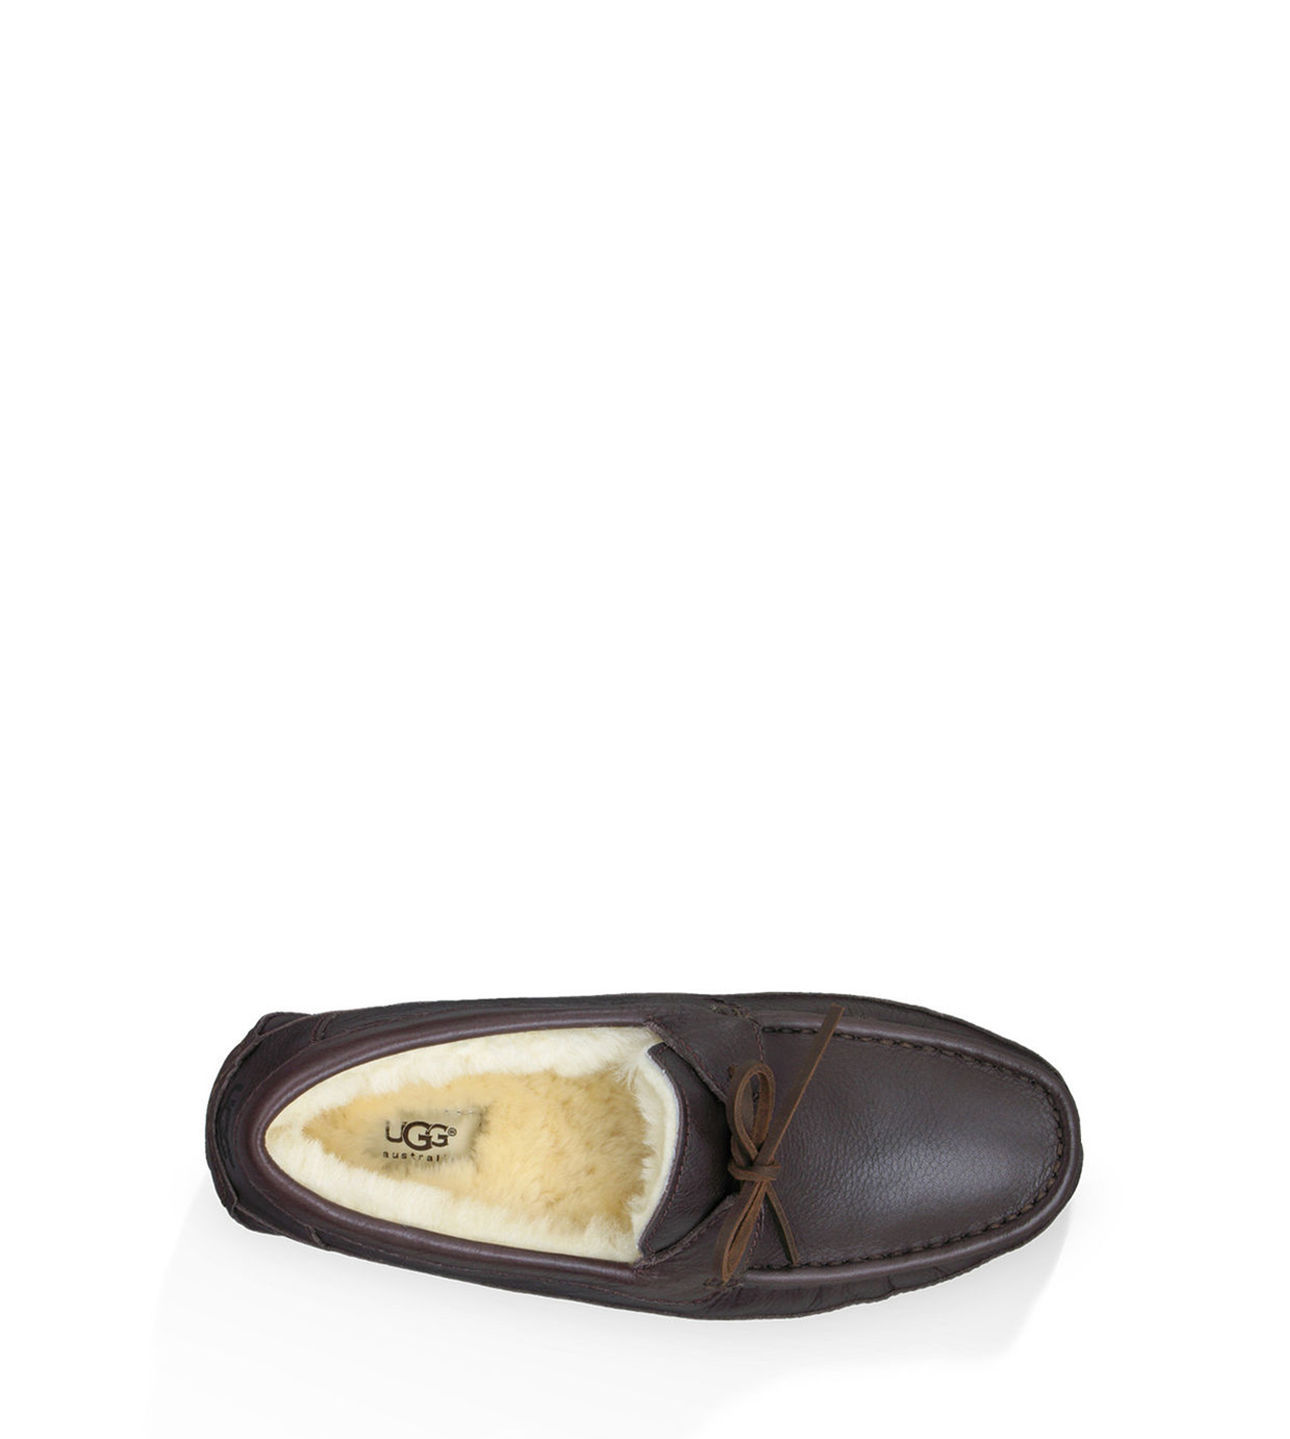 d71349993c4 Ugg Men's Byron - Chocolate Leather